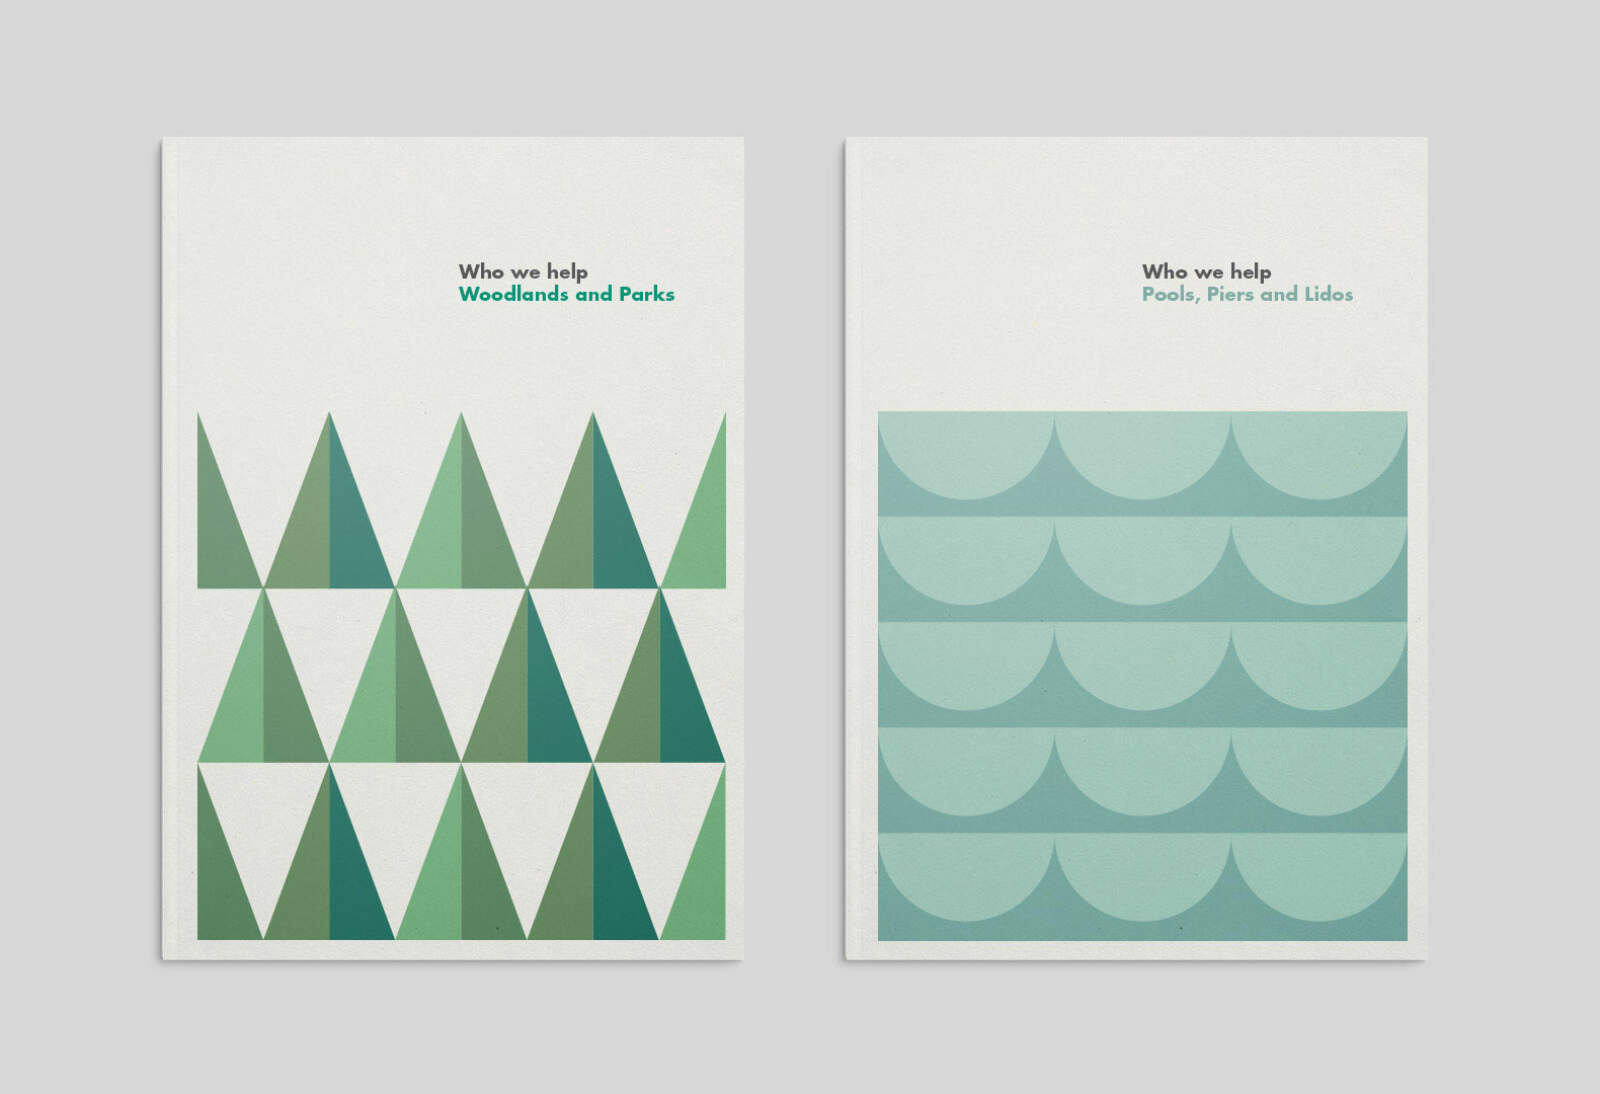 Community Shares printed report covers designed using our pattern based design system.